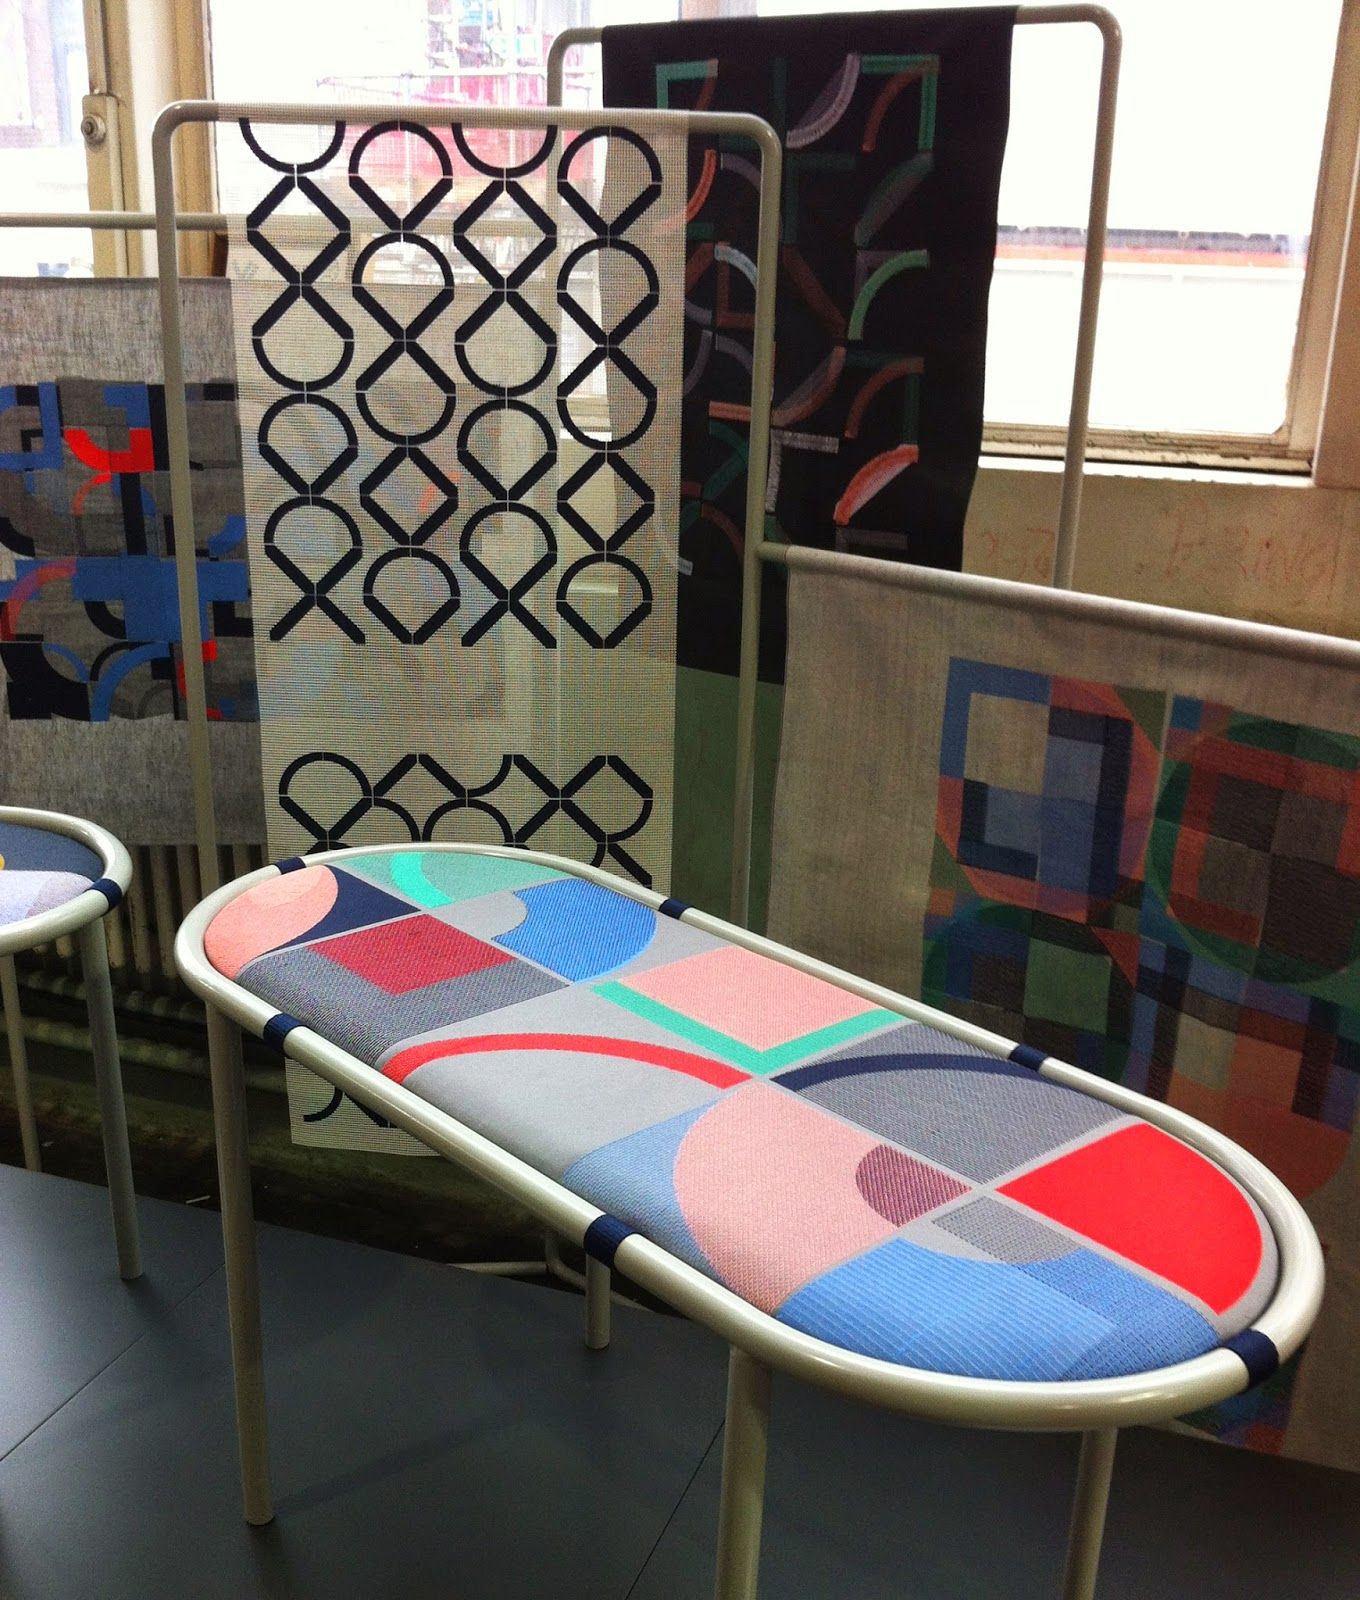 Jen Haugan - Gemma Kay Waggett at DesignJunction